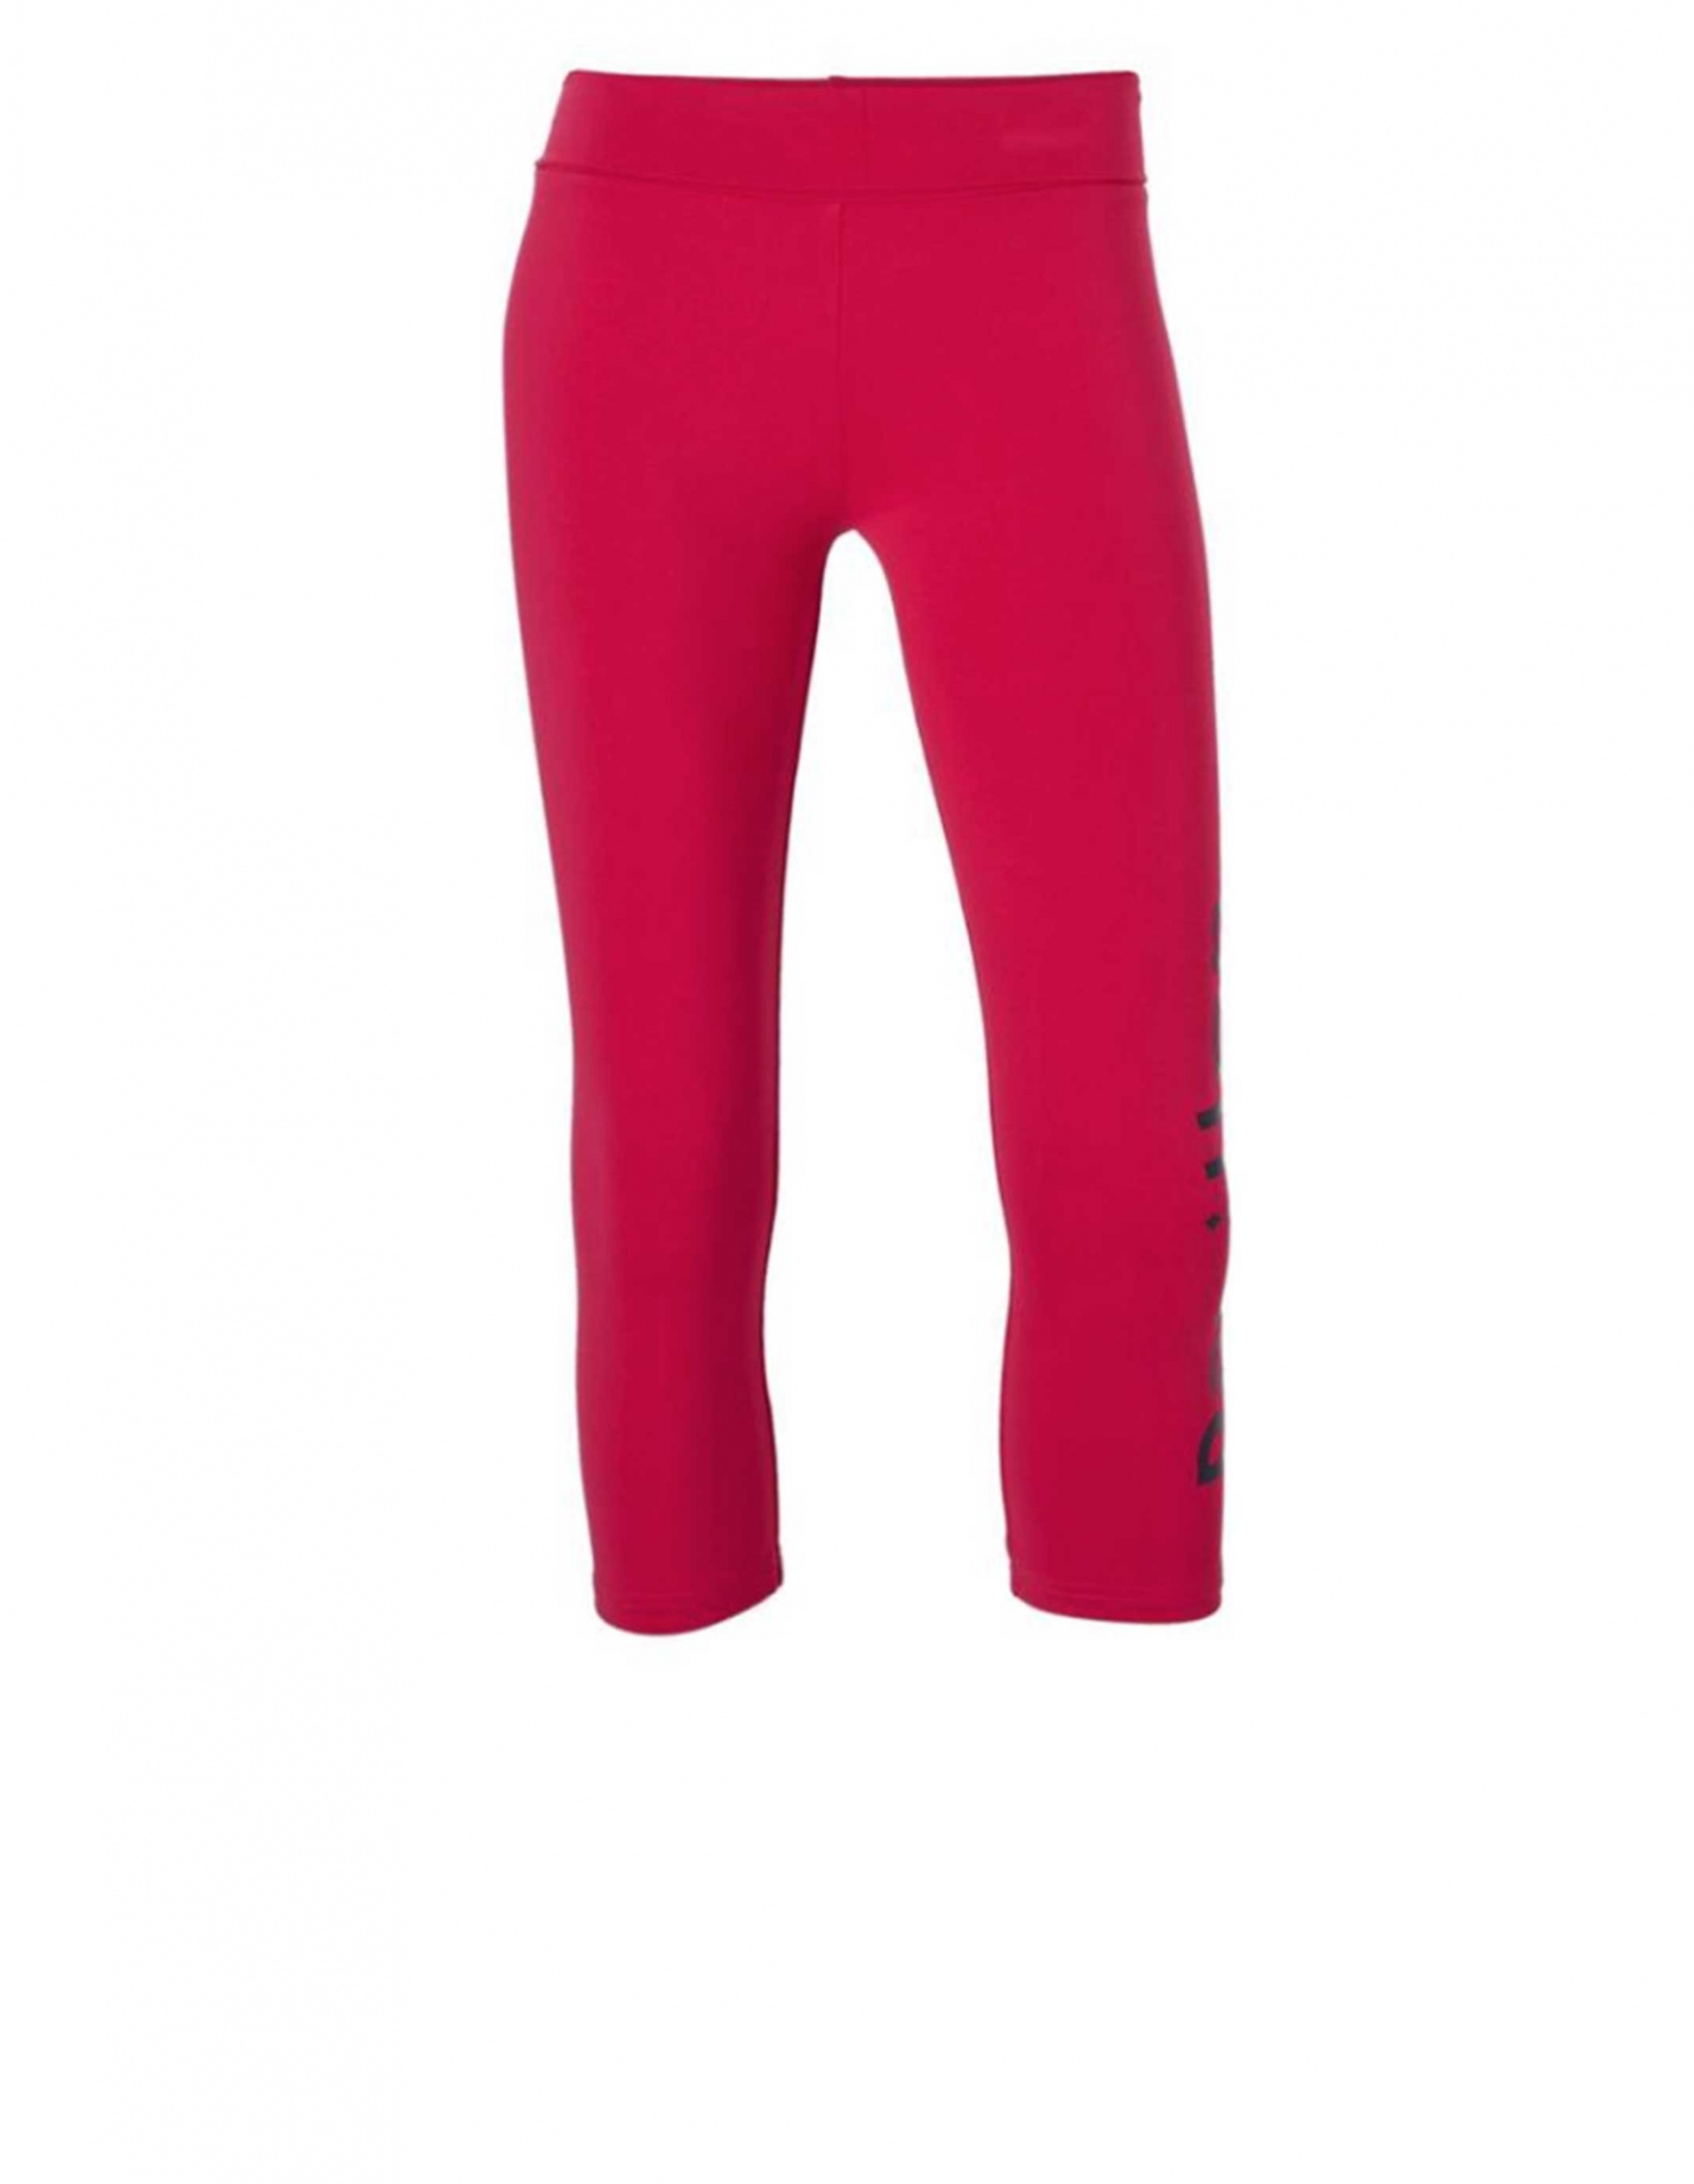 Capri Sportlegging.Papillon Capri Sportlegging Roze Internet Sport Casuals